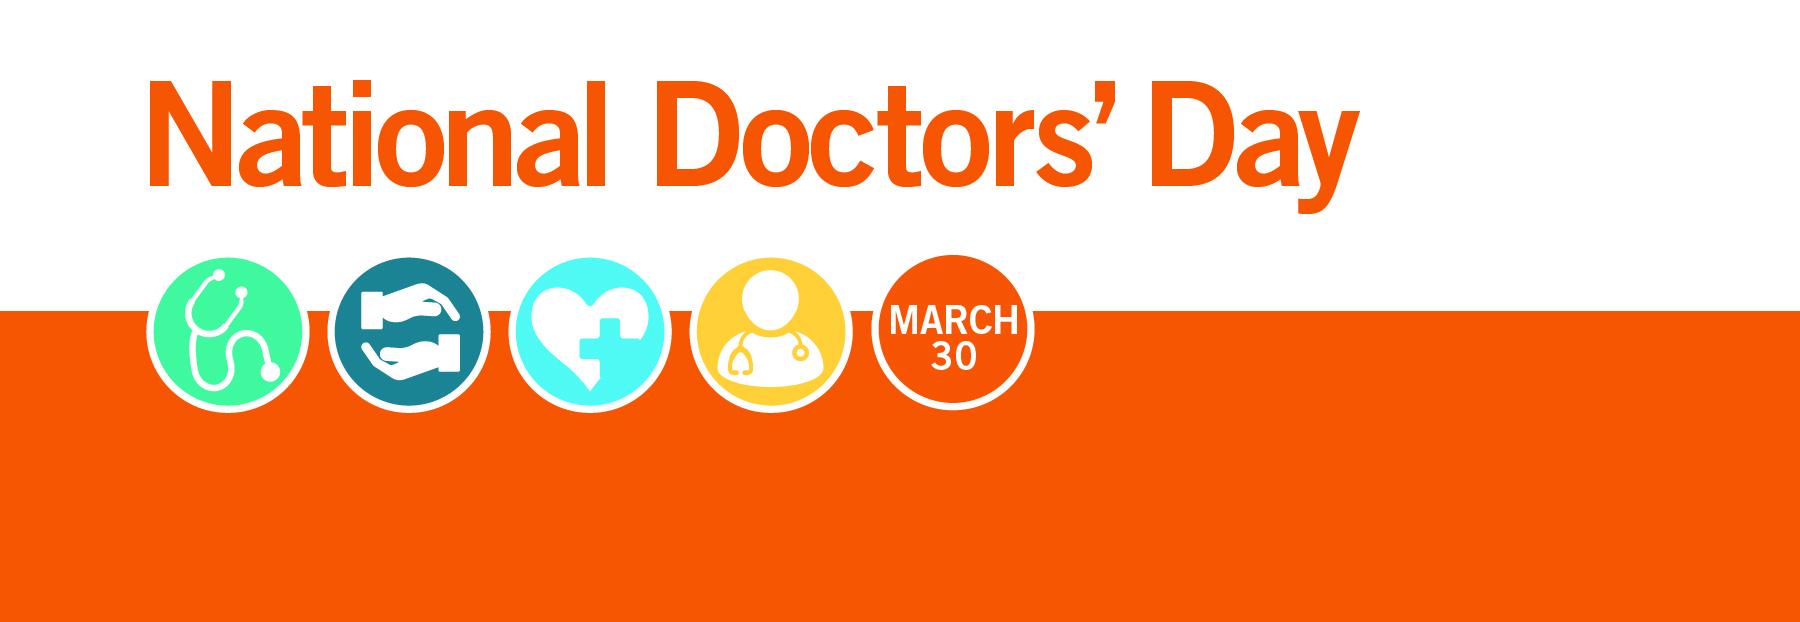 Doctors Day 2020 Banner